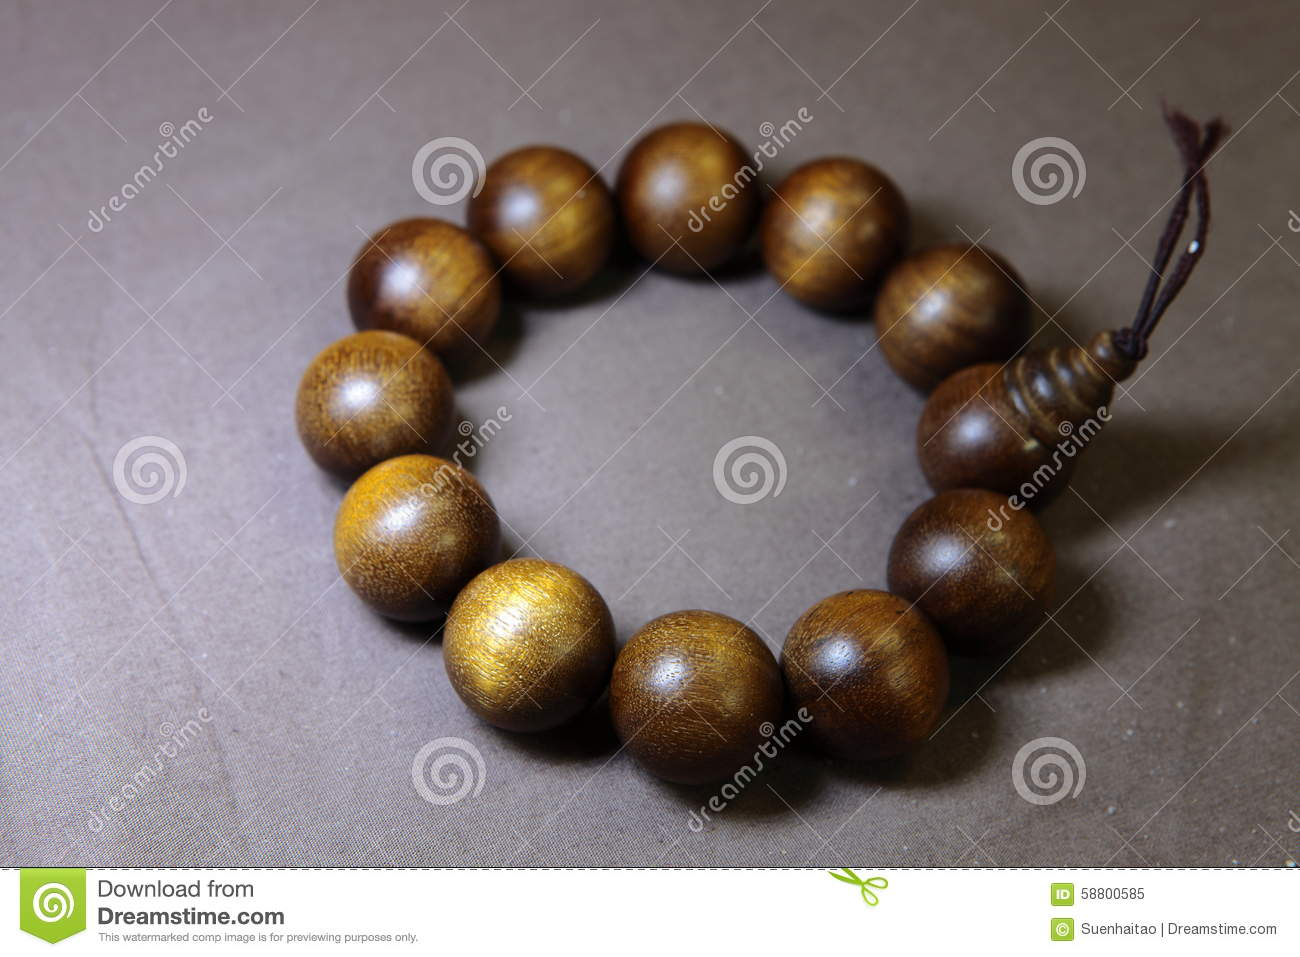 hot wood hop wooden jewelry buddhist men product beads bead buddha sandalwood hip prayer bracelet bracelets meditation